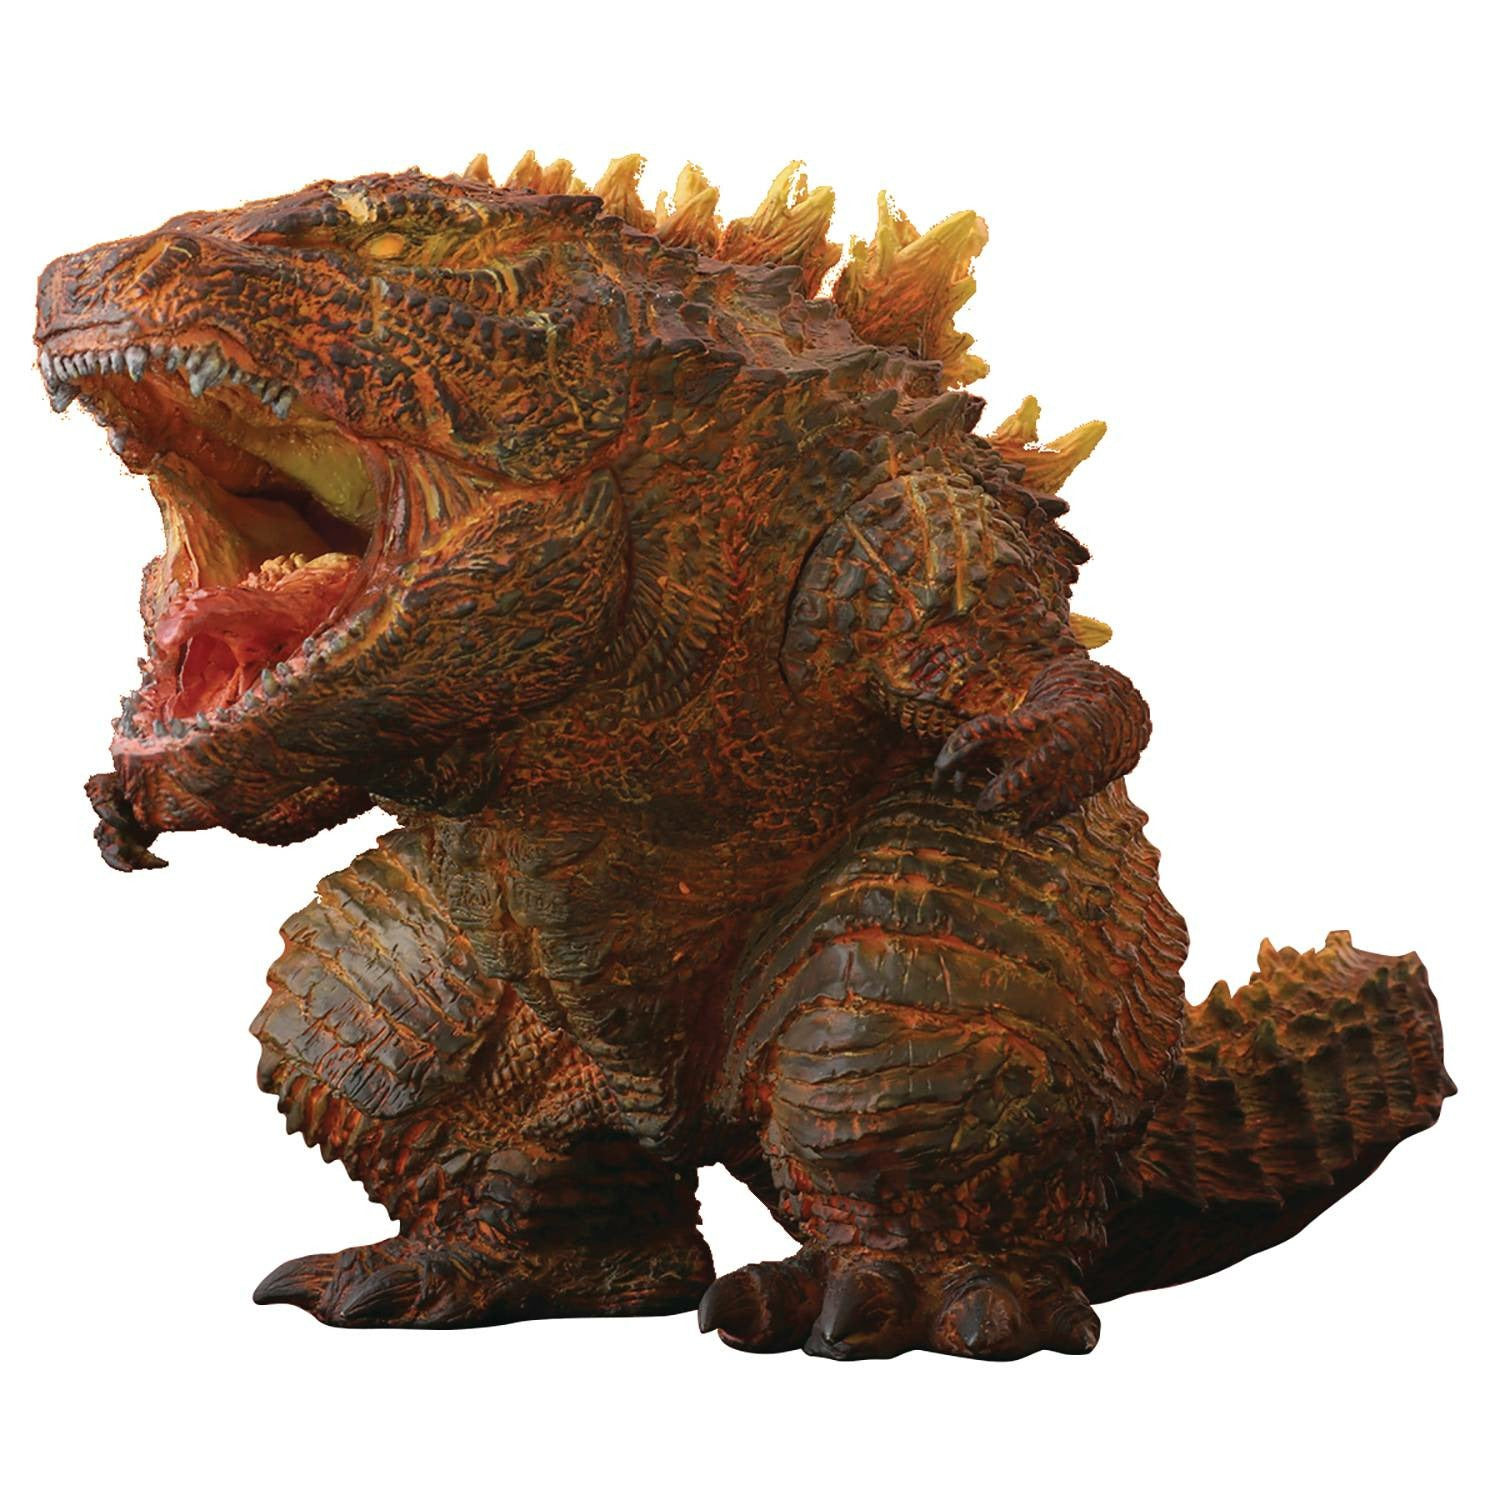 Burning Godzilla Defo Real Soft Vinyl Statue